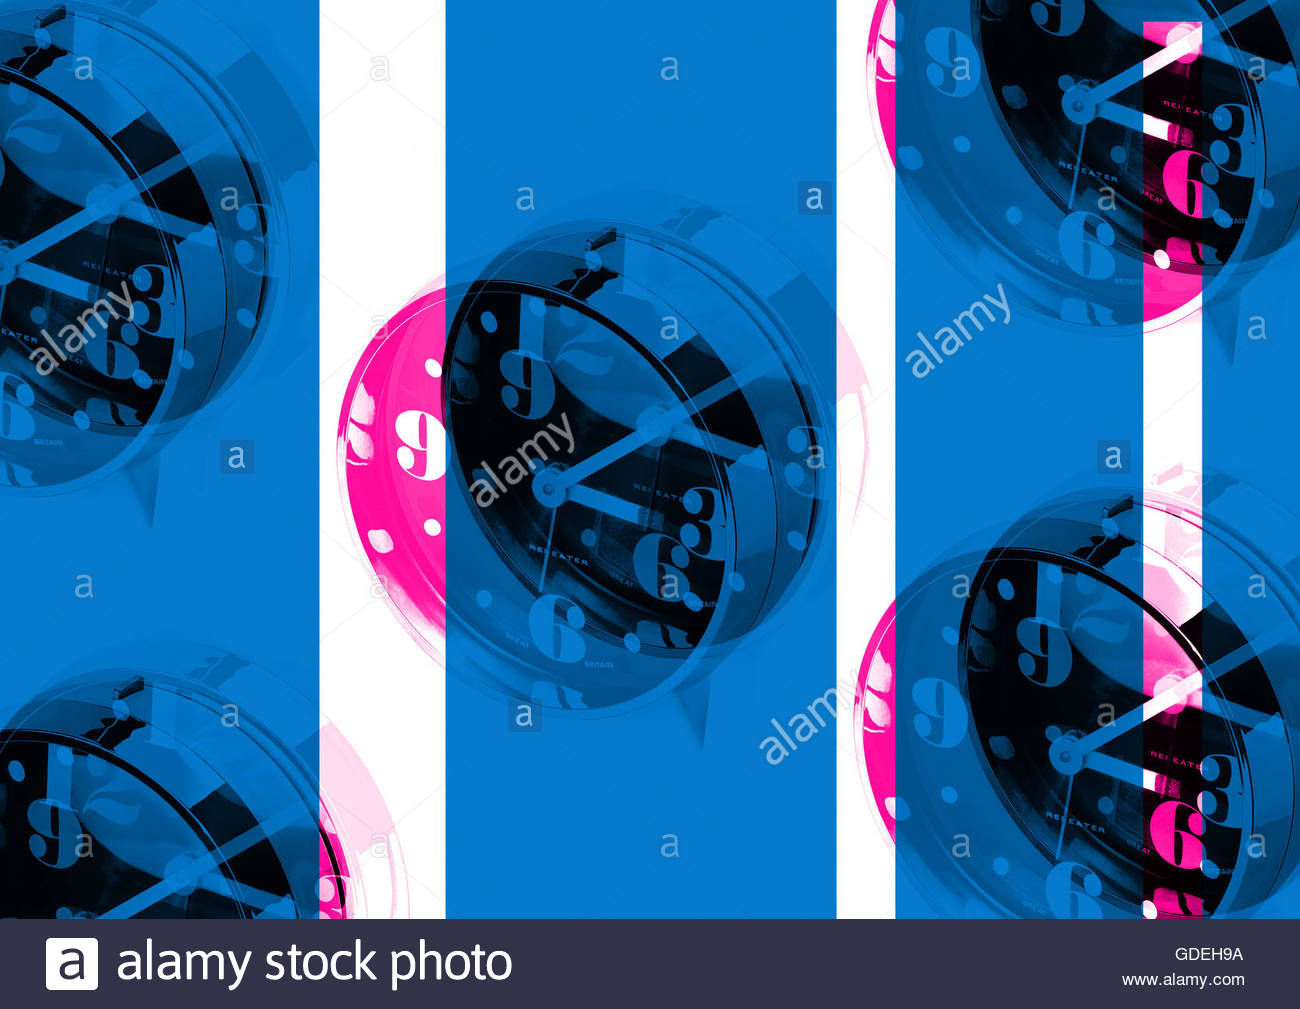 Vintage retro sixties boogaloo clock alarm repeat London look Stock Photo